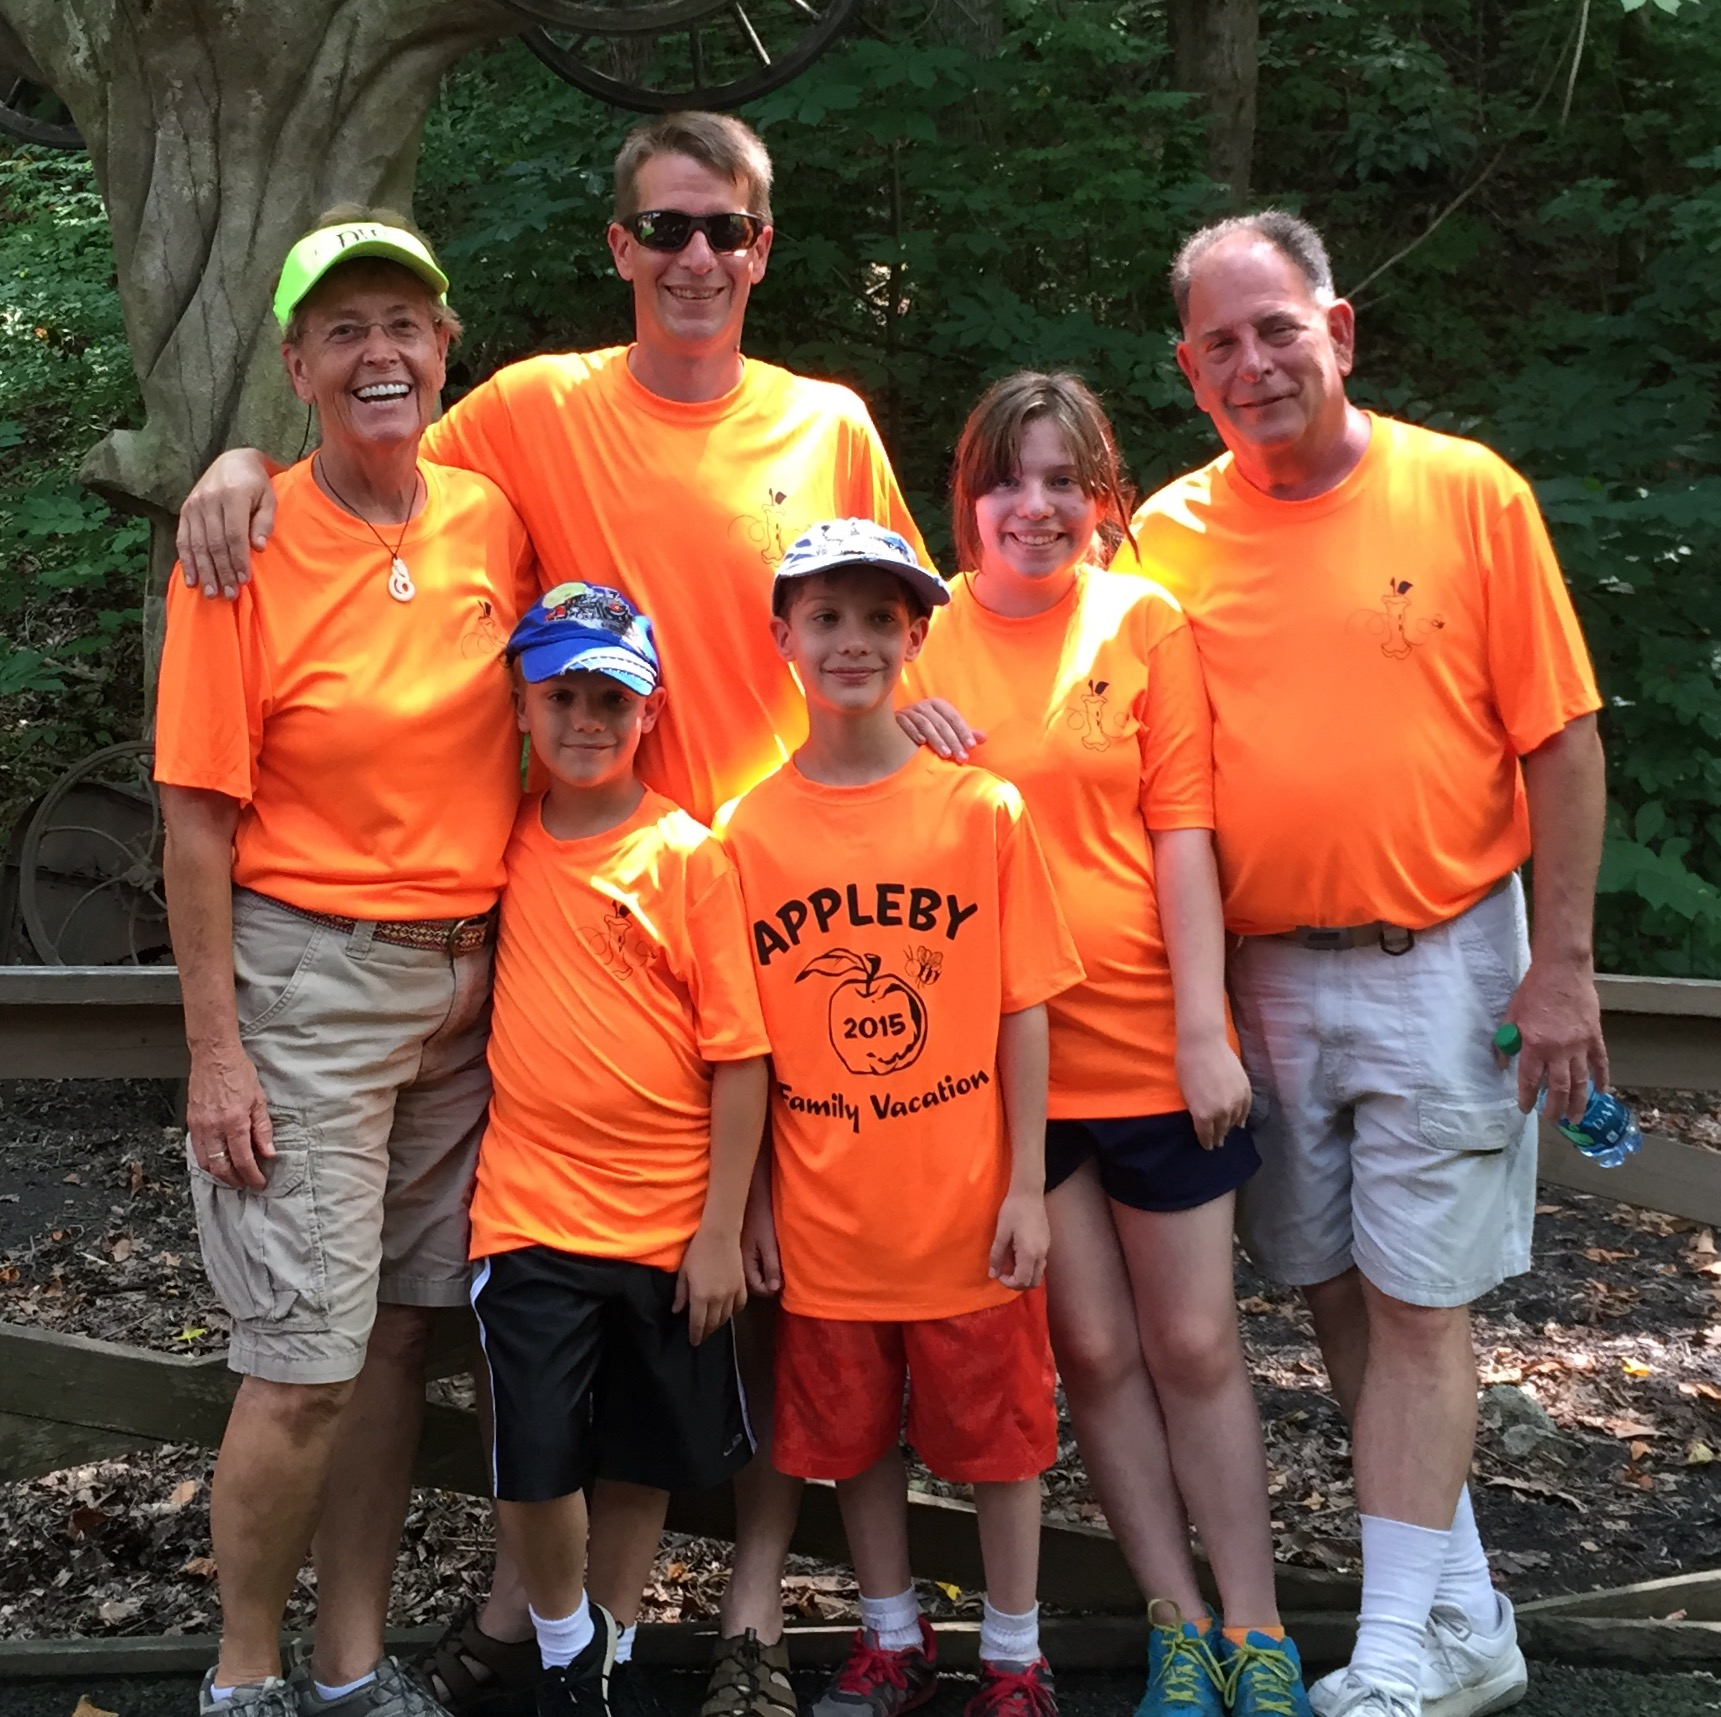 Custom T Shirts For Appleby Family Vacation In Dollywood